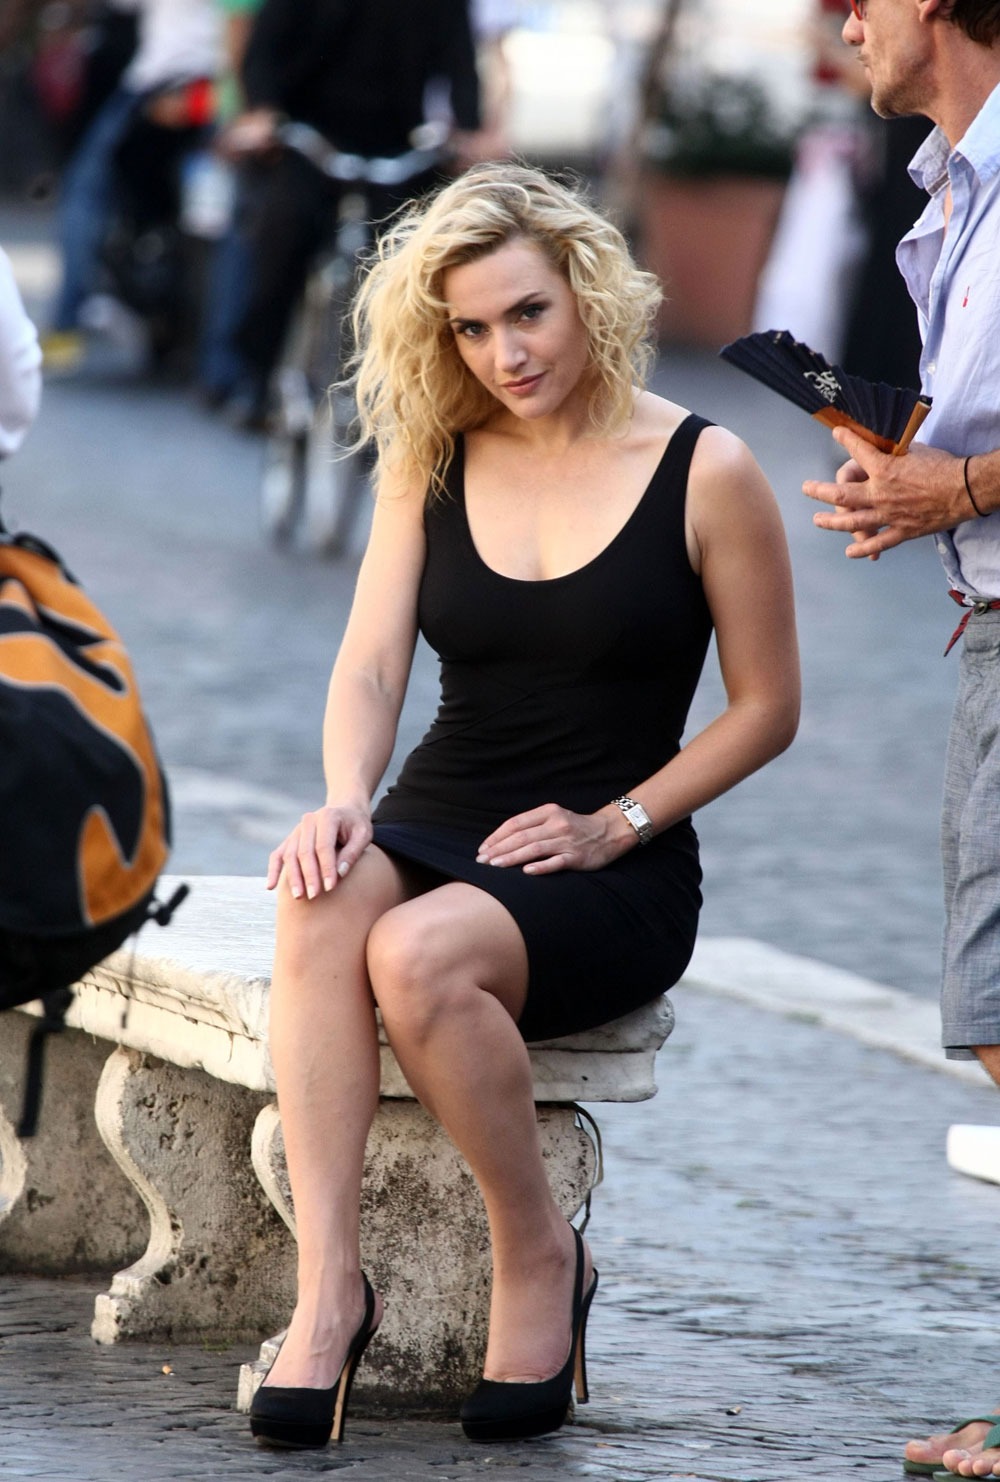 Hottest Photos of Kate Winslet, Bikini Pictures & Hot